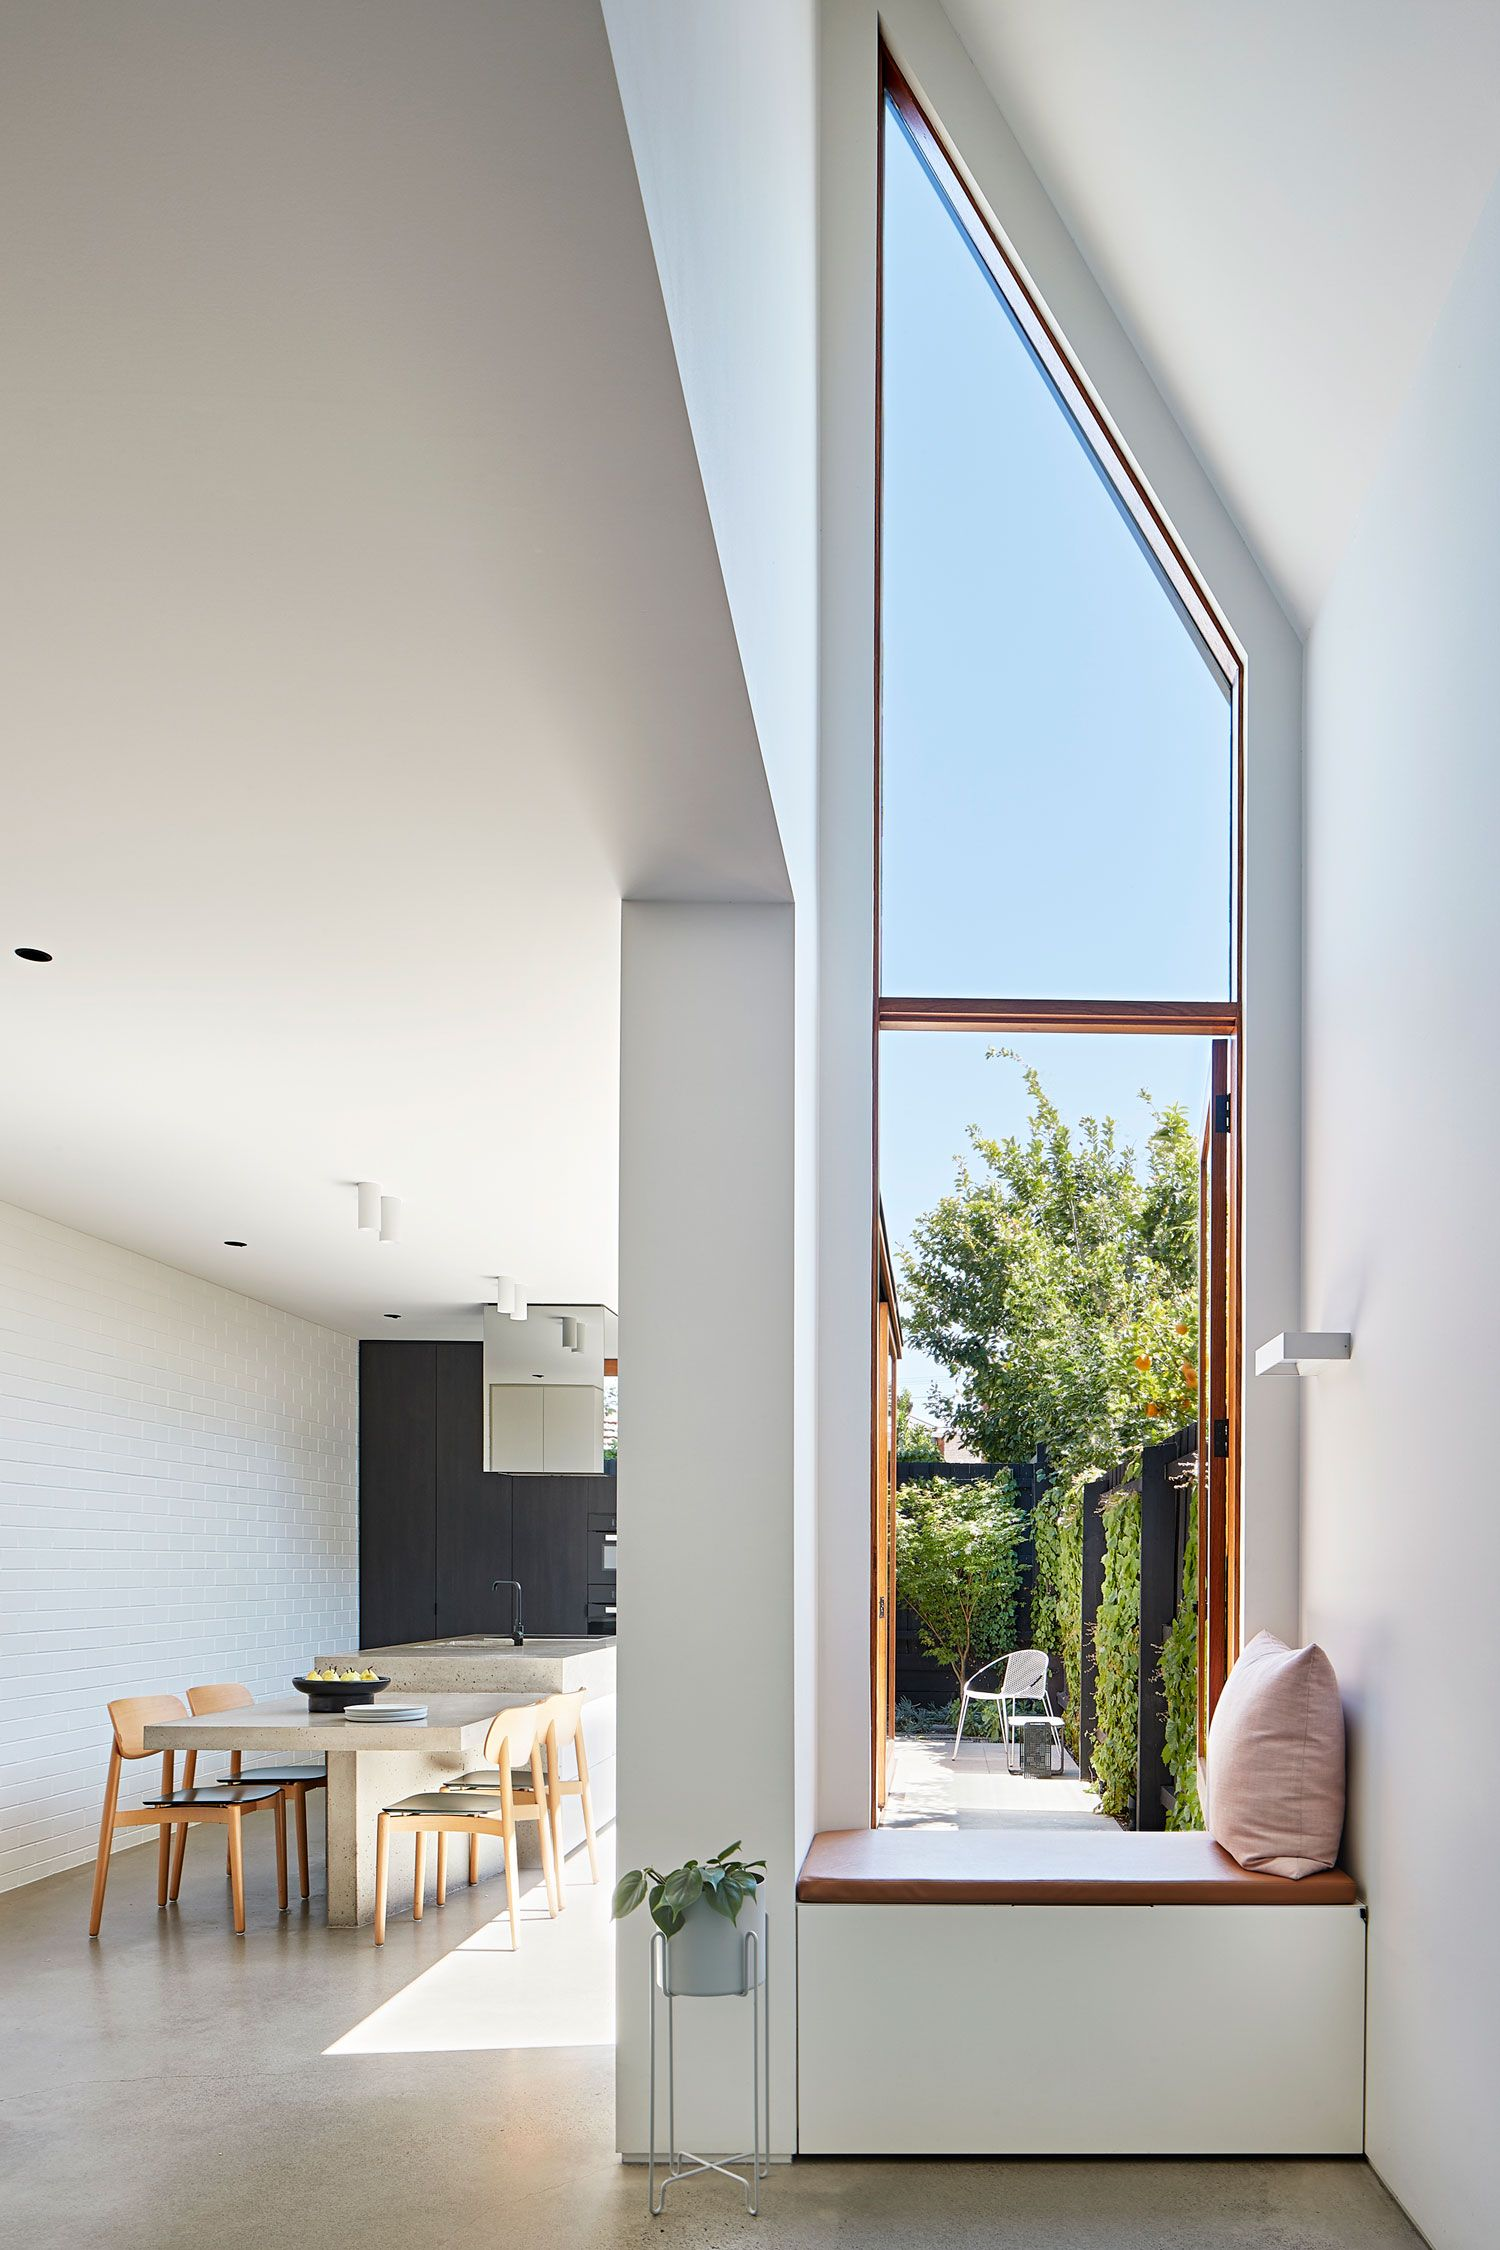 Injecting a new sense and purpose into a modest workers' cottage in Abbotsford, Melbourne, considered internal voids are created by Lande Architects to encourage a flood of natural light into the narrow terrace.